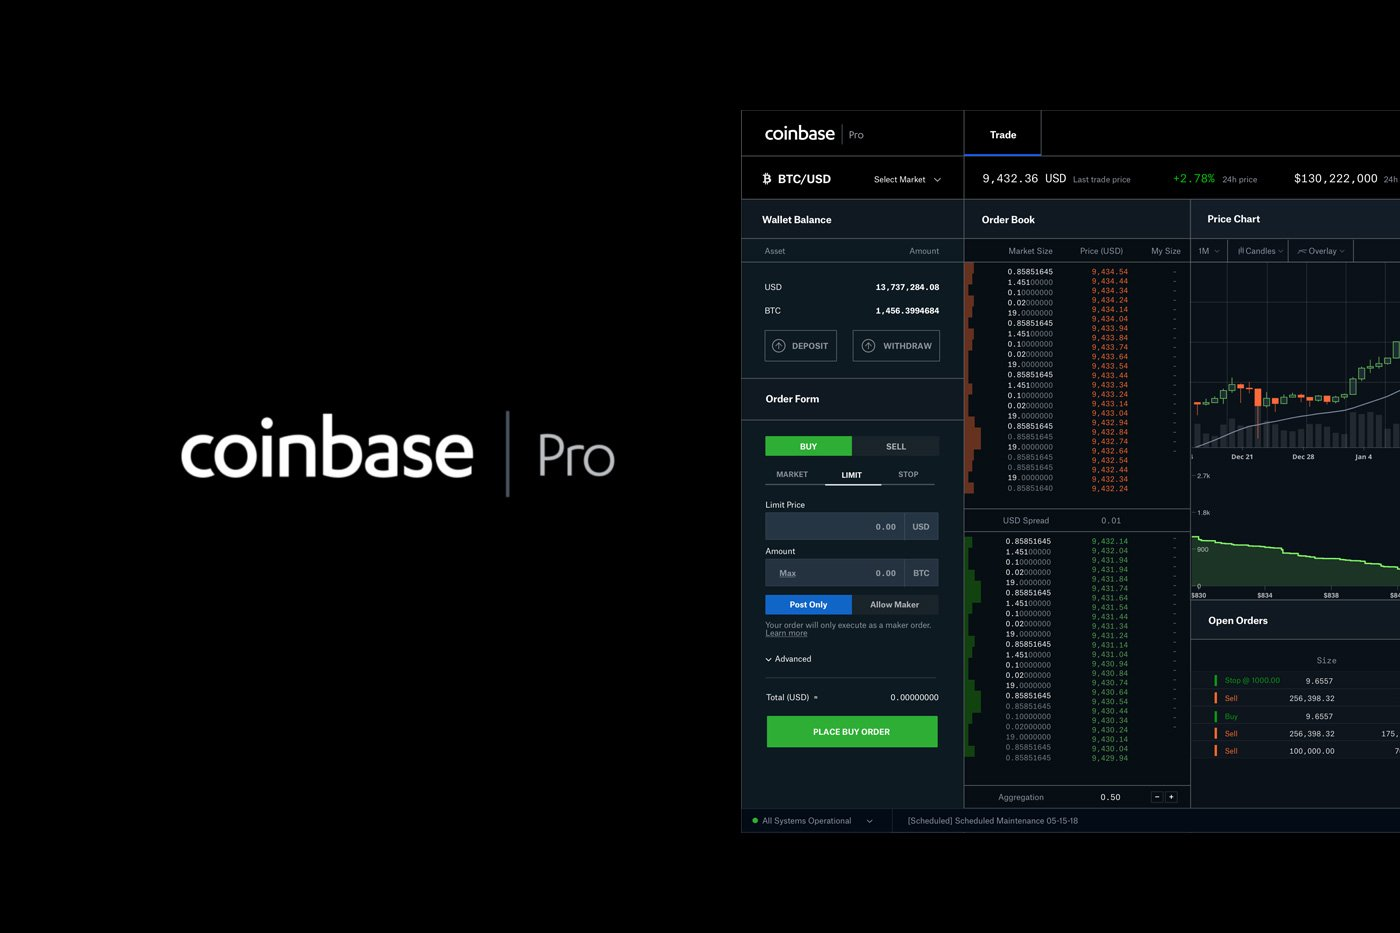 coinbase convert to usd